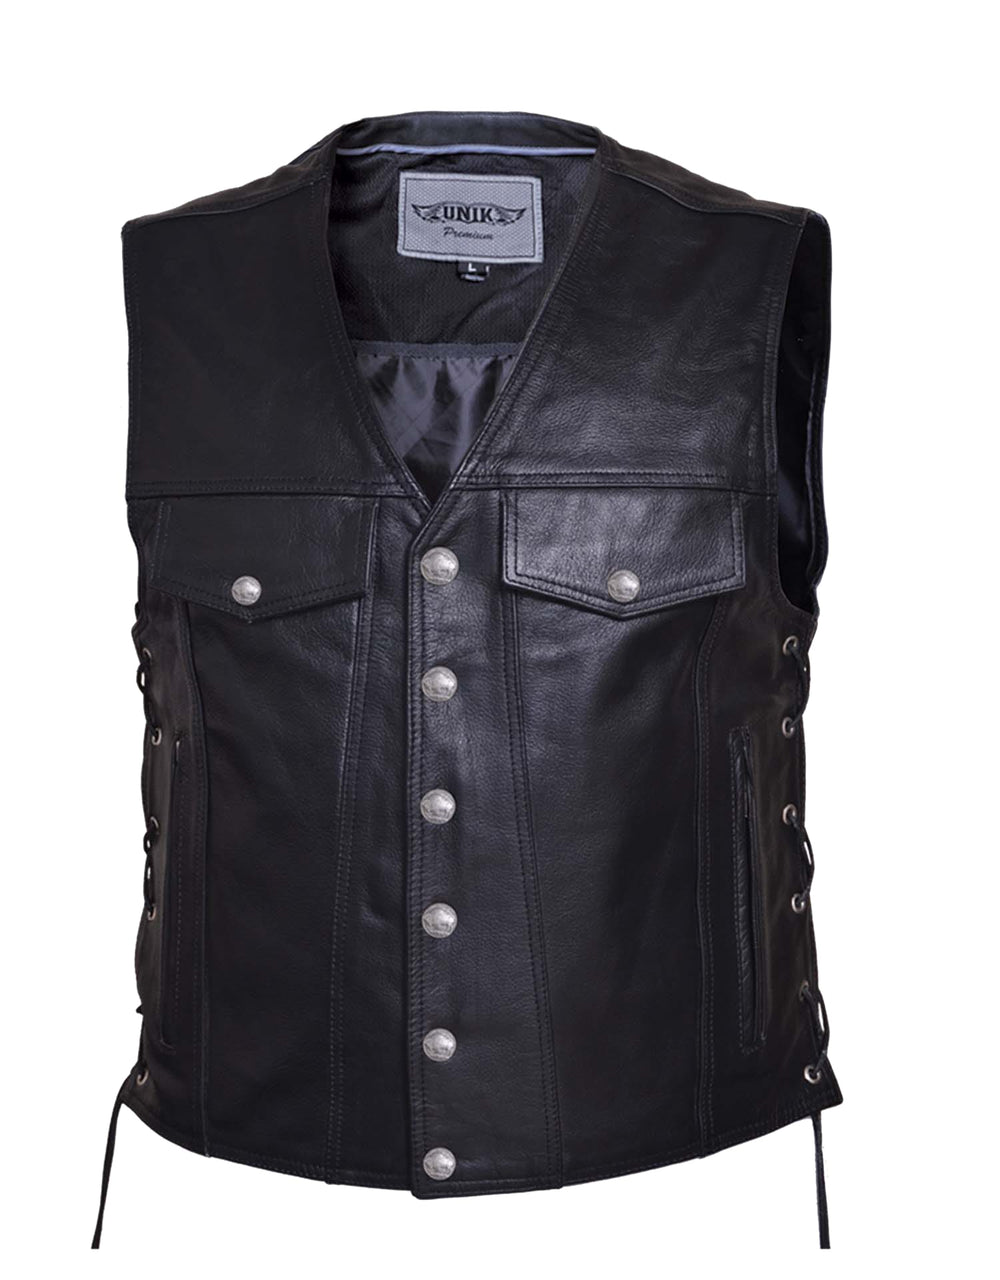 Men's Premium Leather Motorcycle Vest Biker Club Leather with Gun pockets one piece back for patches - HighwayLeather